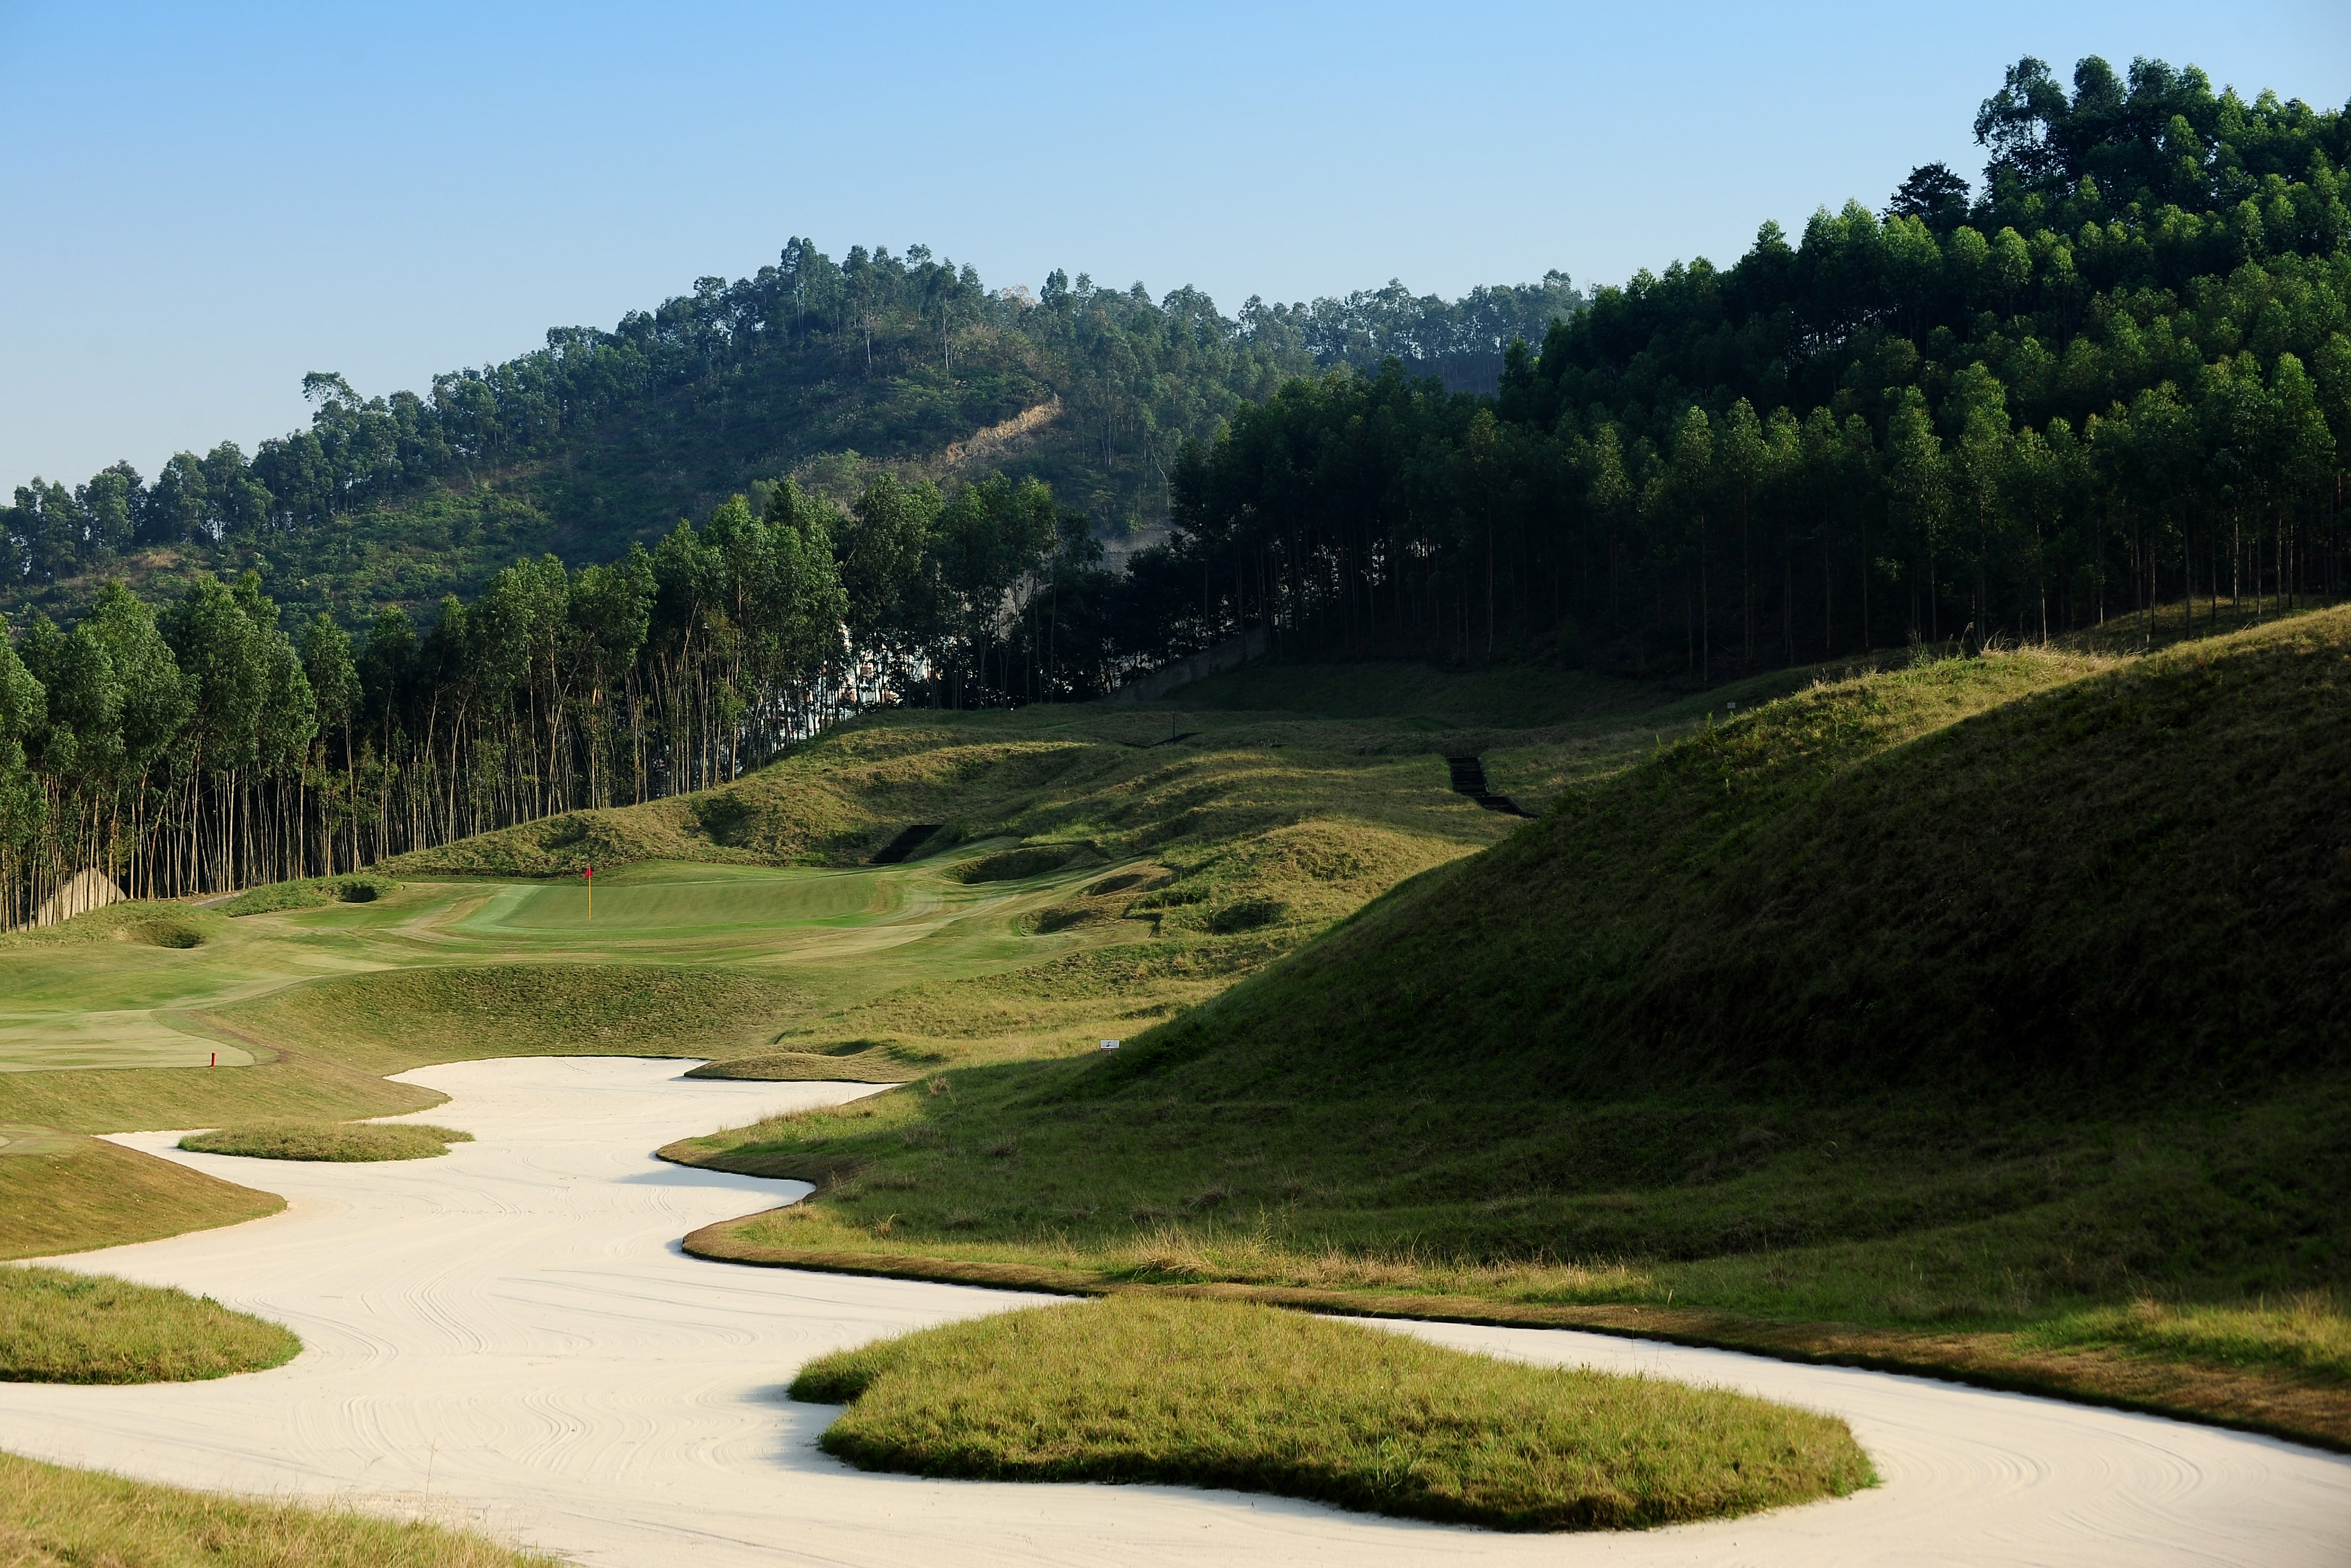 SHENZHEN, CHINA - NOVEMBER 23:  A general view of the 14th hole on the Pete Dye course at the Mid Valley golf complex on November 23, 2009 in Shenzhen, China.  (Photo by Stuart Franklin/Getty Images)